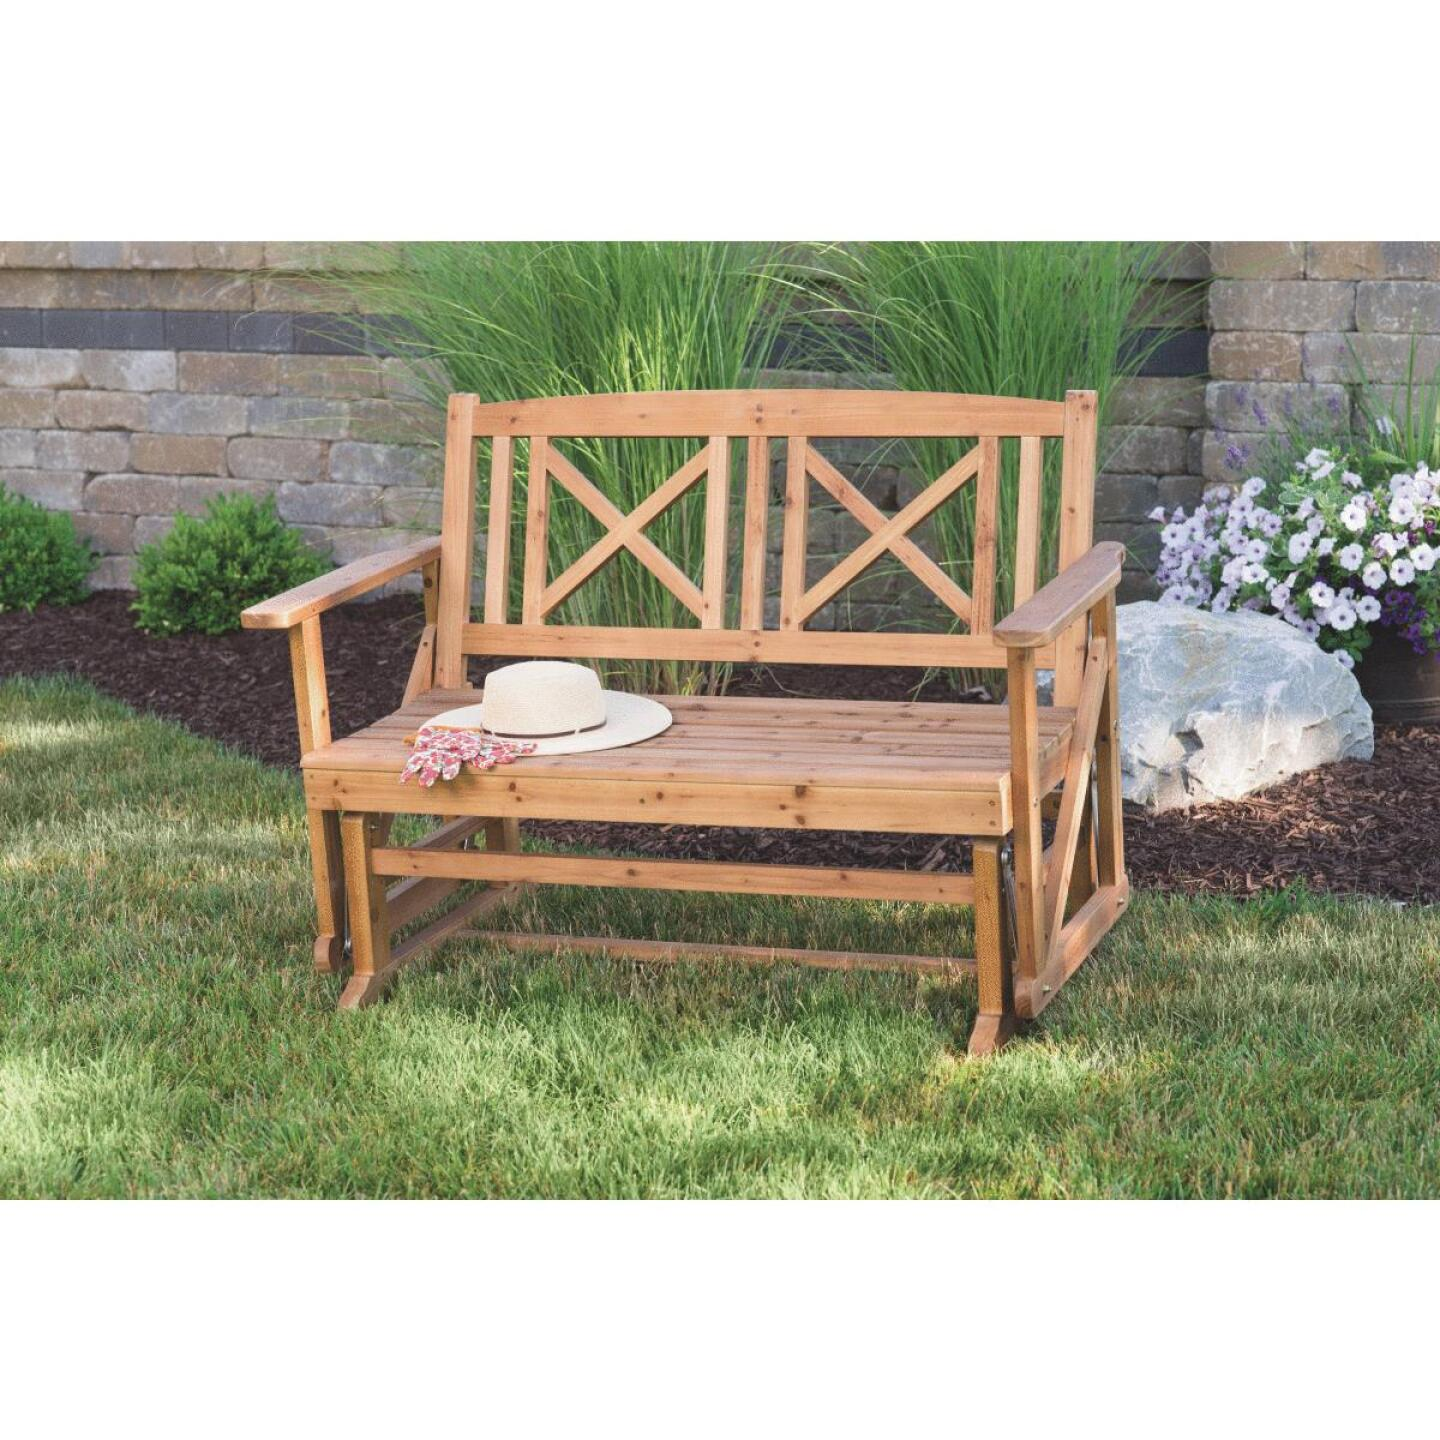 Jack Post Tan Wood Decorative Glider Bench Image 3